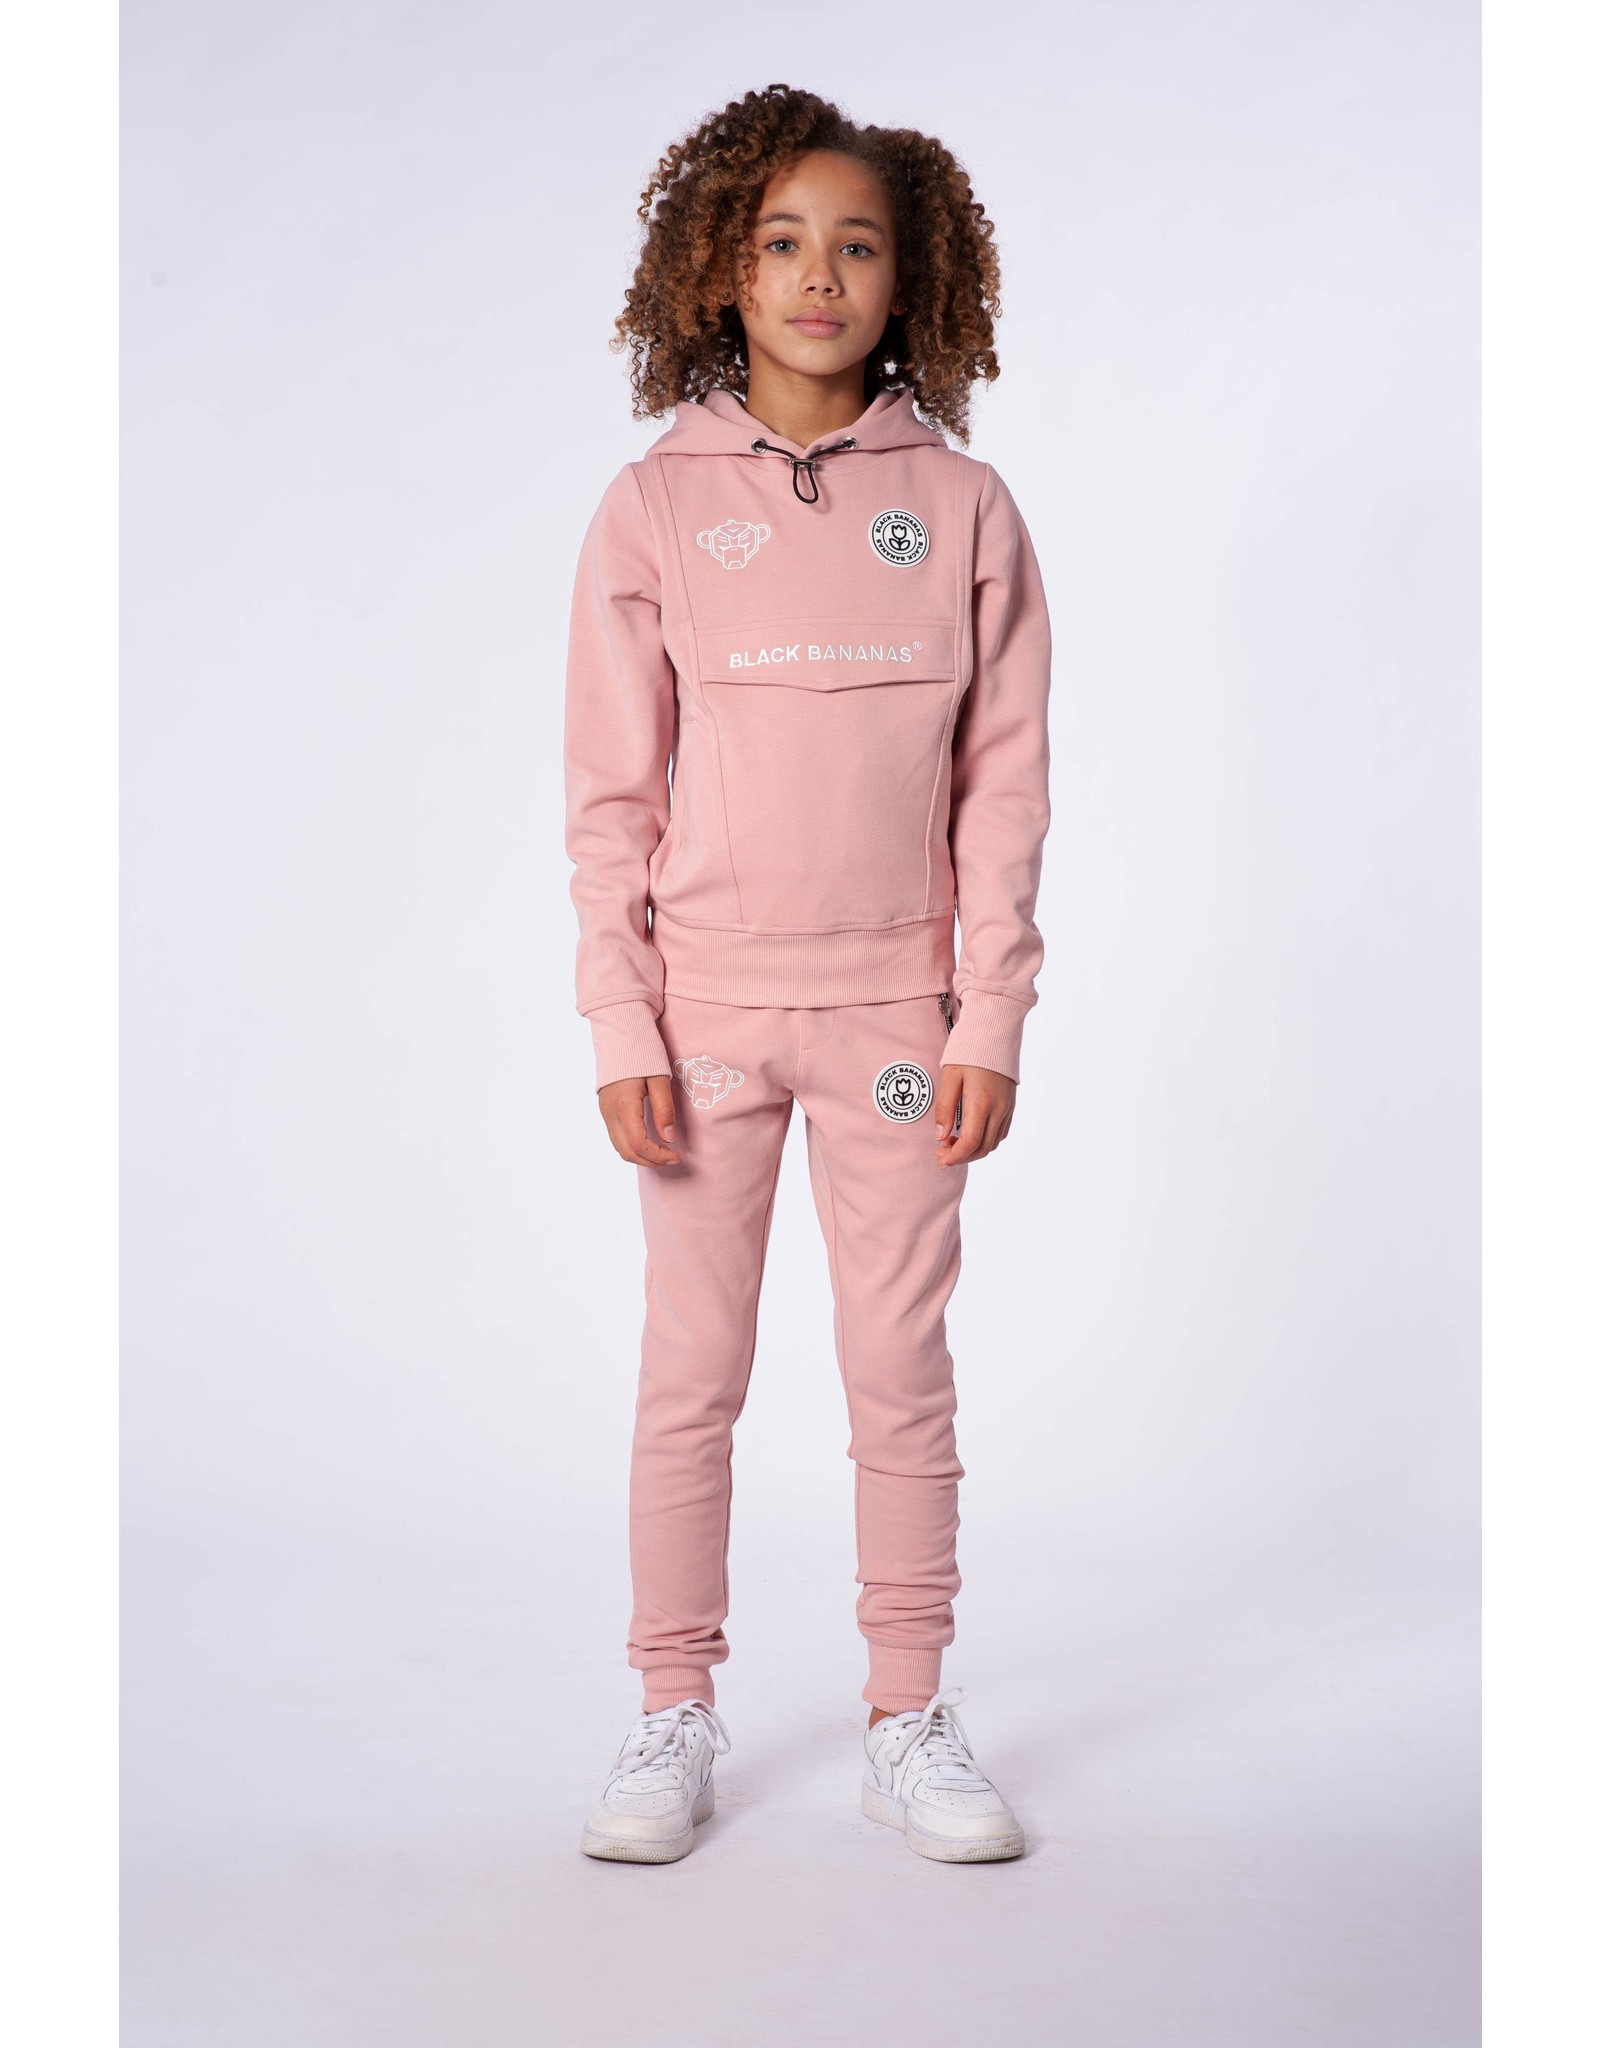 Black Bananas Jr. Girls Anorak Tracksuit